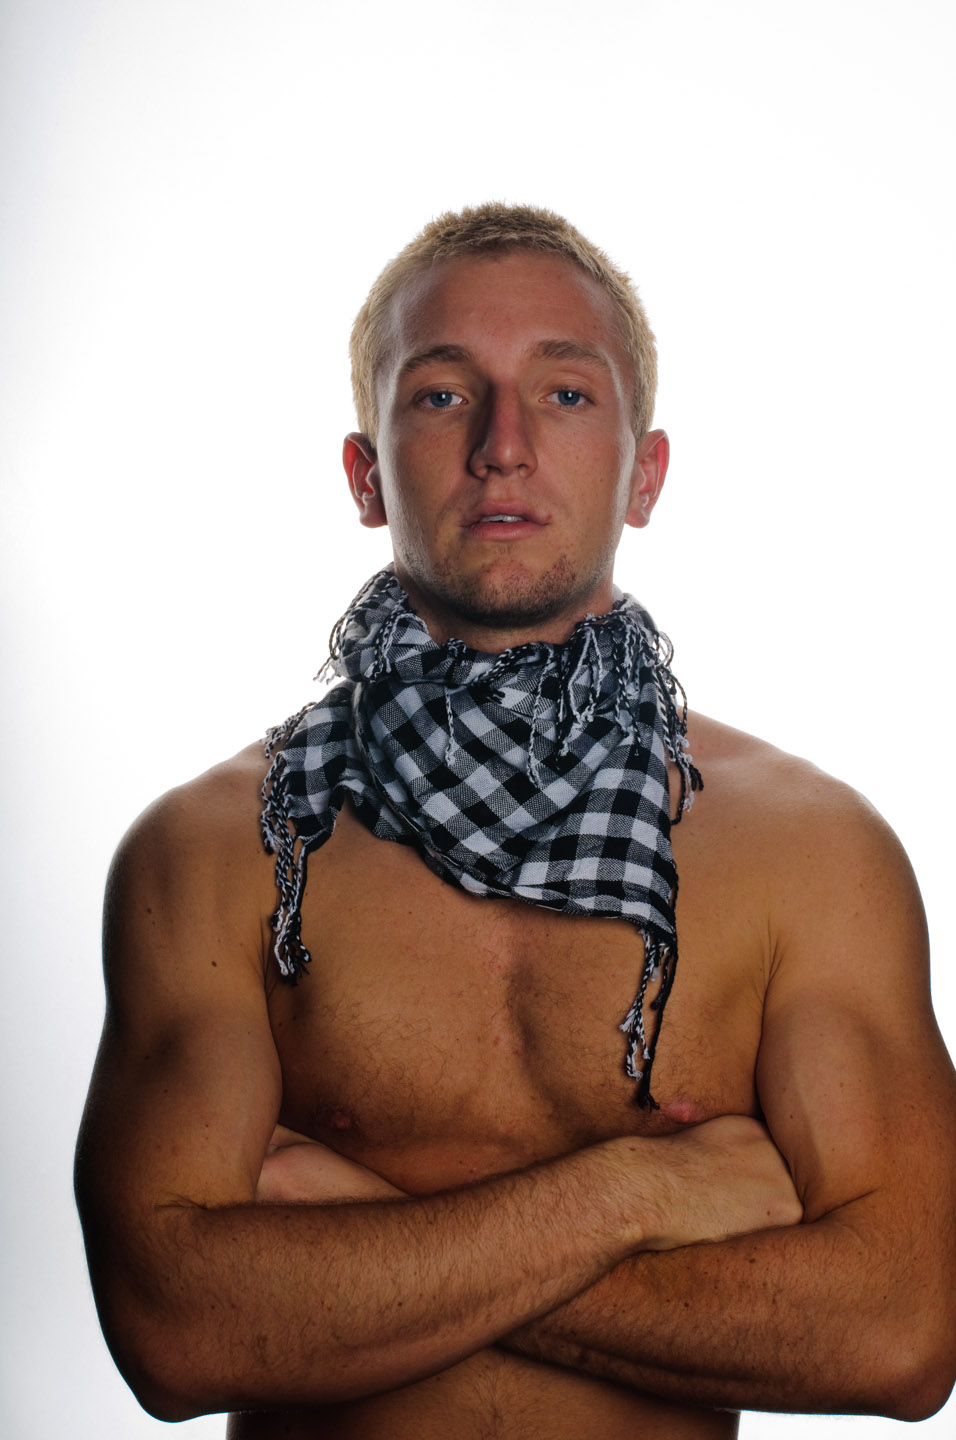 Shirtless with a scarf